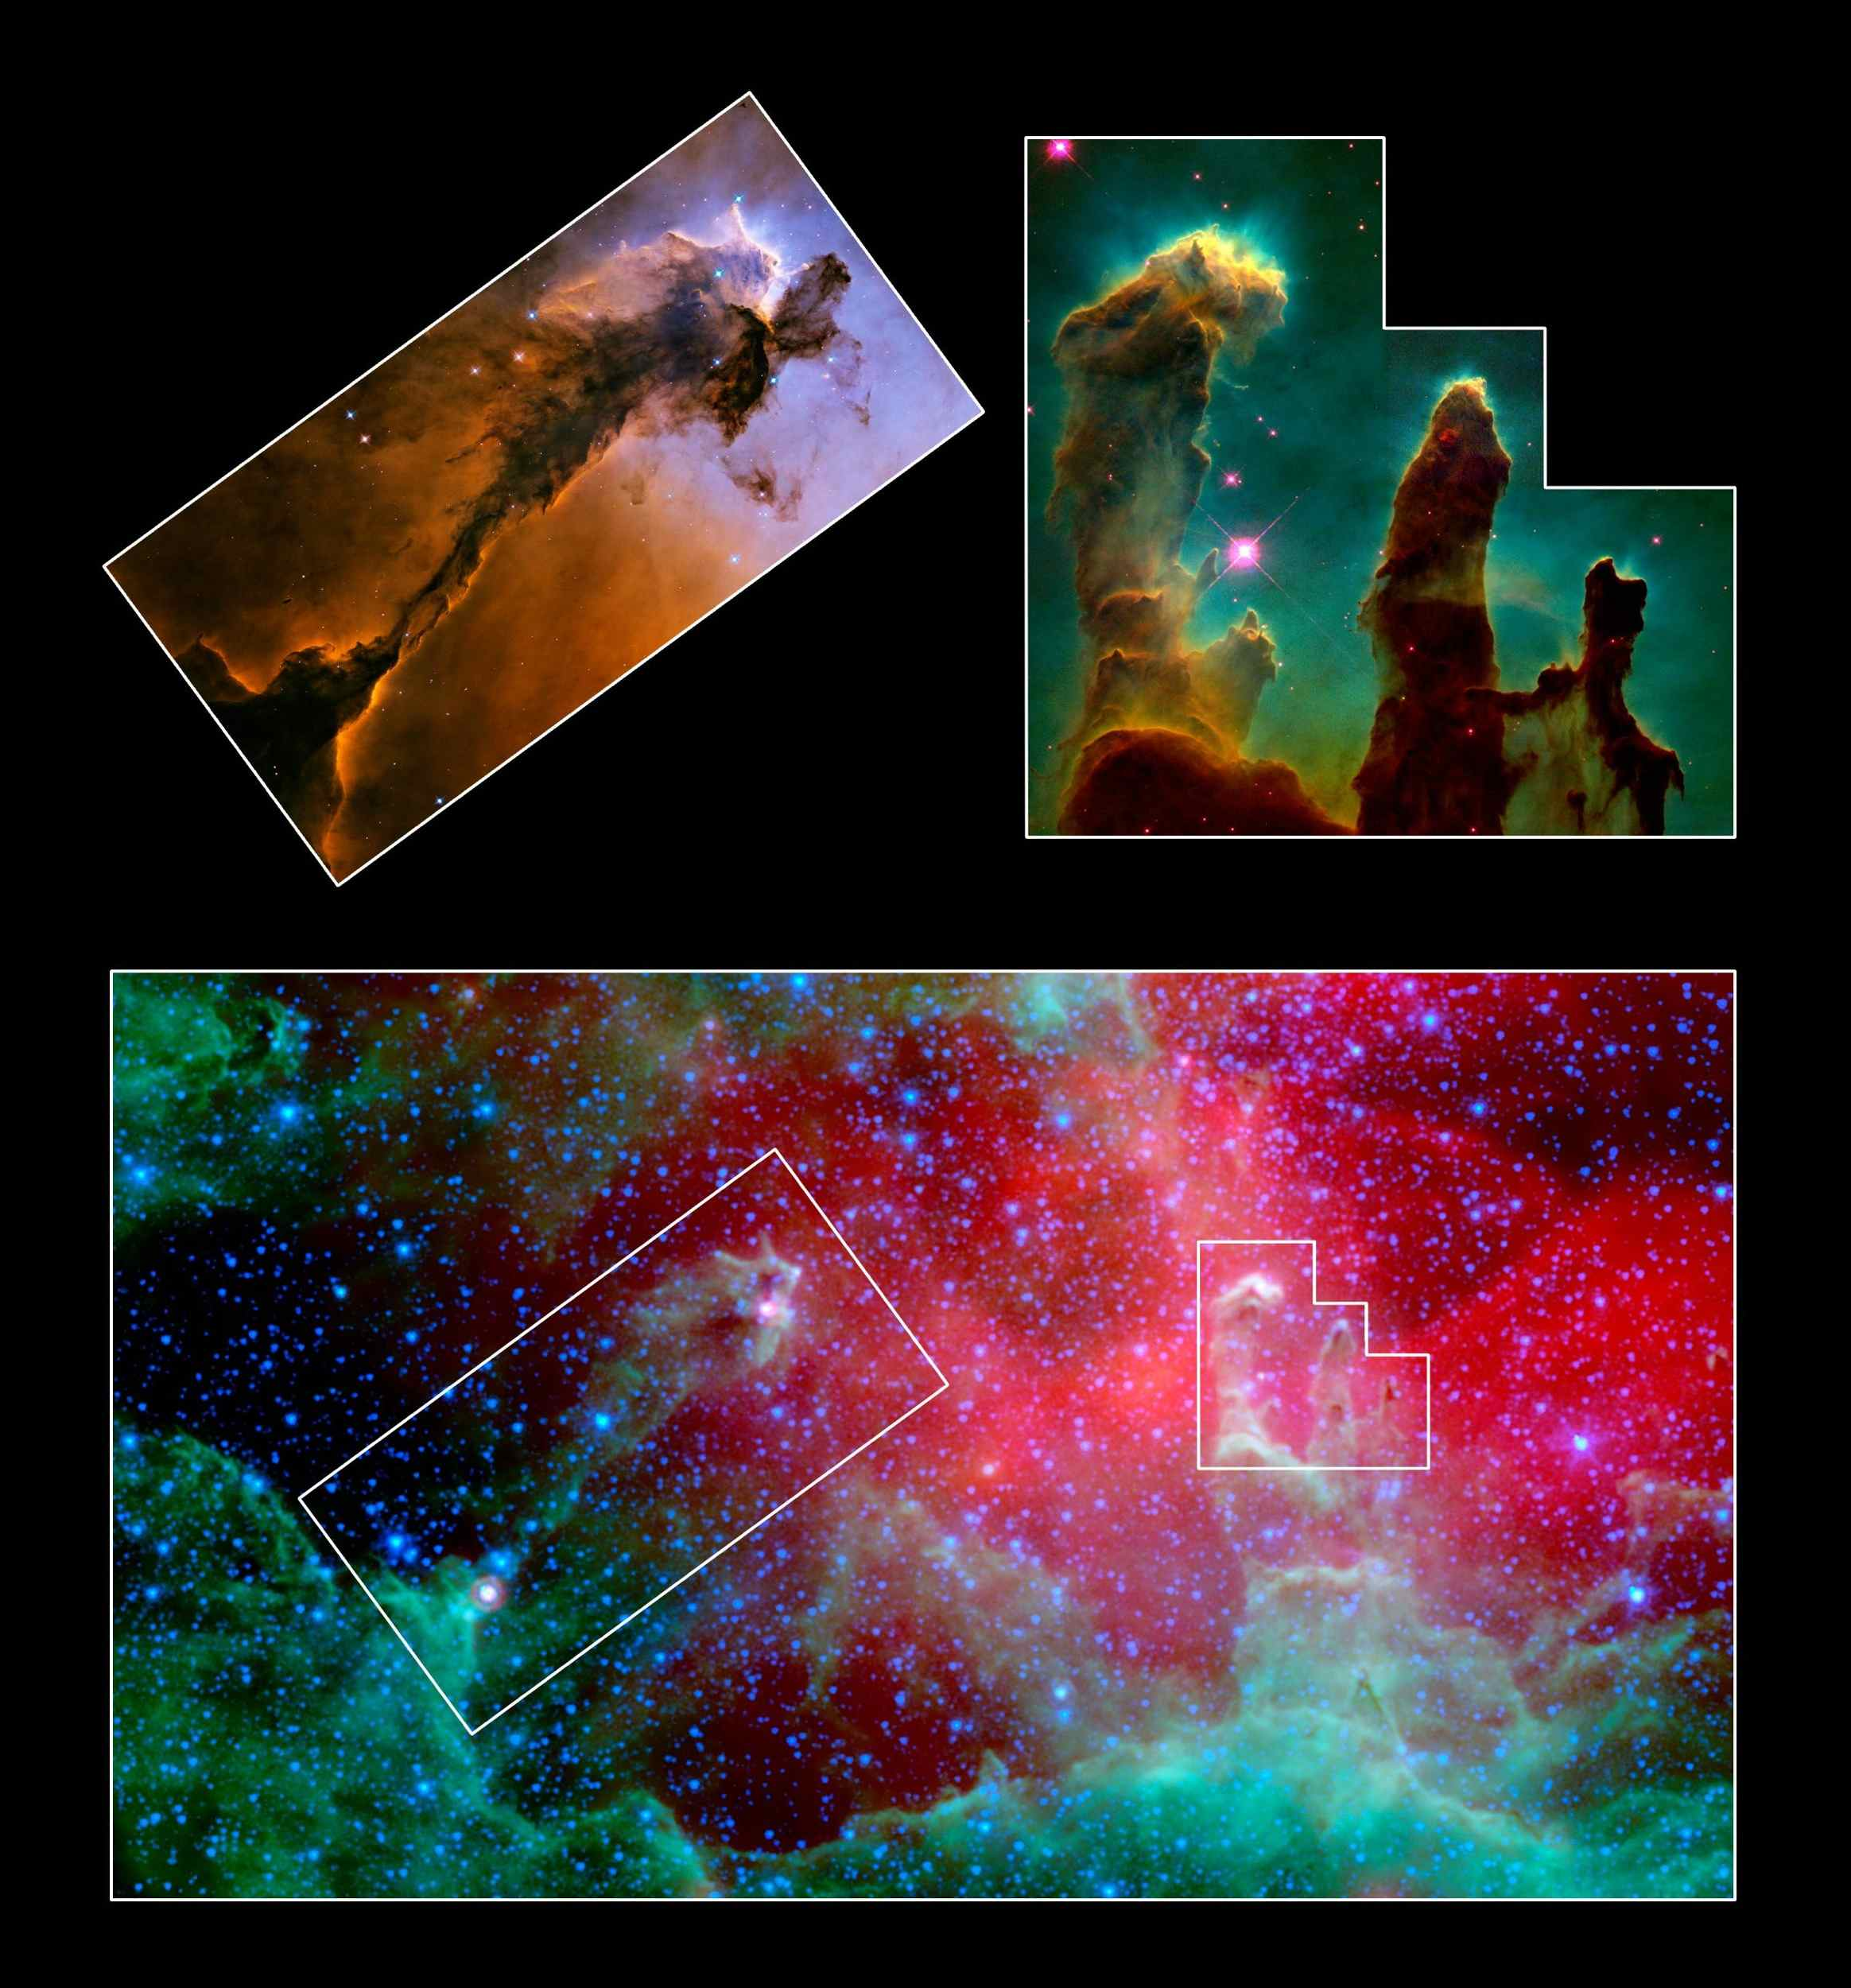 Space Images Unwrapping The Pillars - Nasa release new hd photographs iconic pillars creation photo